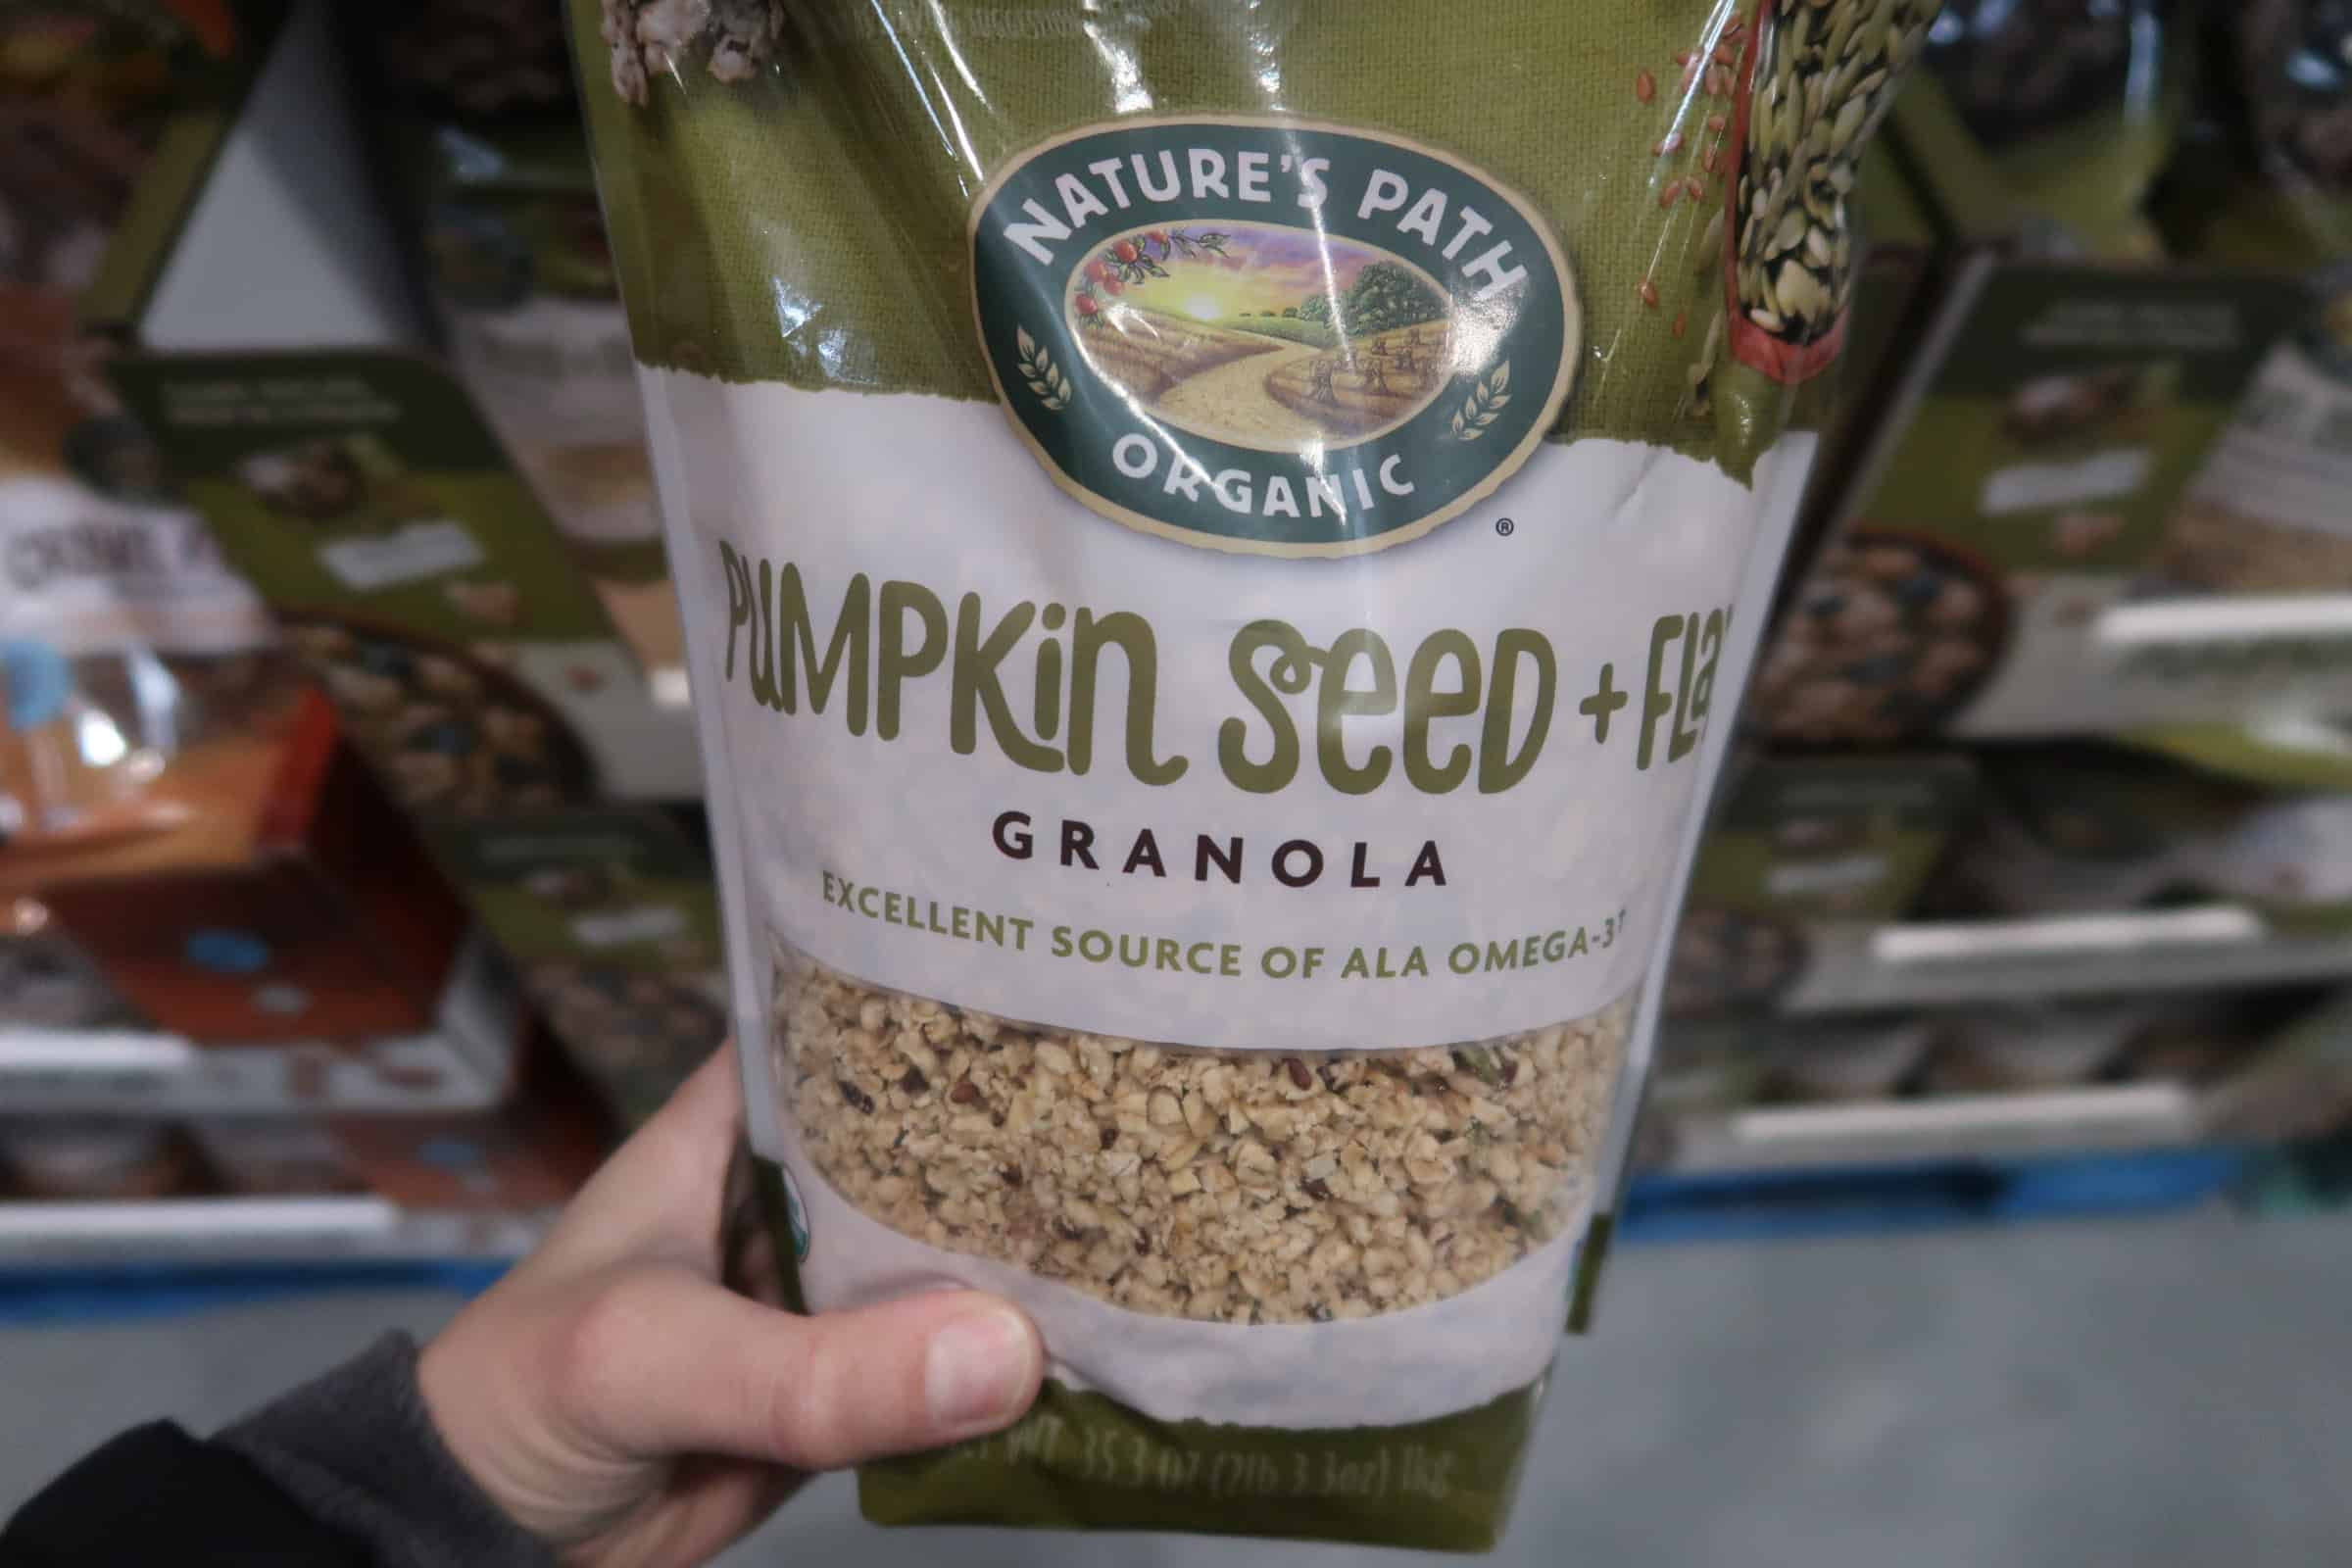 Nature's Path Organic Pumpkin Seed Granola $4.99